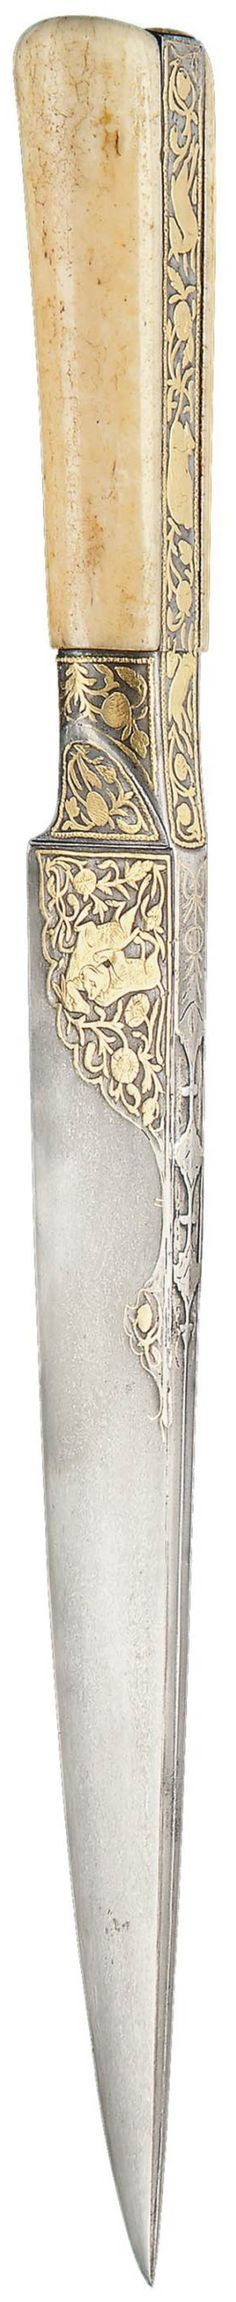 Persian (Zand or Qajar) kard dagger, late 18th to early 19th century, tapering single-edged watered-steel blade, the back edge engraved with a central ridge and lobed medallions, the forte and hilt with hunting scenes and chasing animals in foliage, the signature in gold on the blade ('Ali Akbar), walrus ivory hilt, 15 3/8in. (39cm.) long.